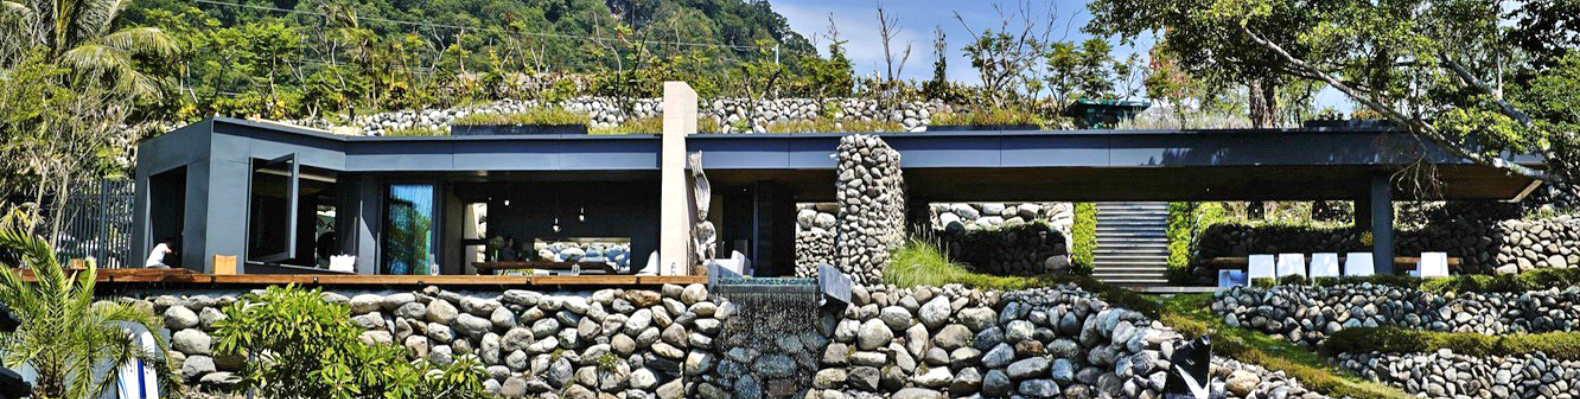 Superb Au0027tolan House Is A Seafront Home Built With Rocks Excavated During Its  Construction | Inhabitat   Green Design, Innovation, Architecture, Green  Building